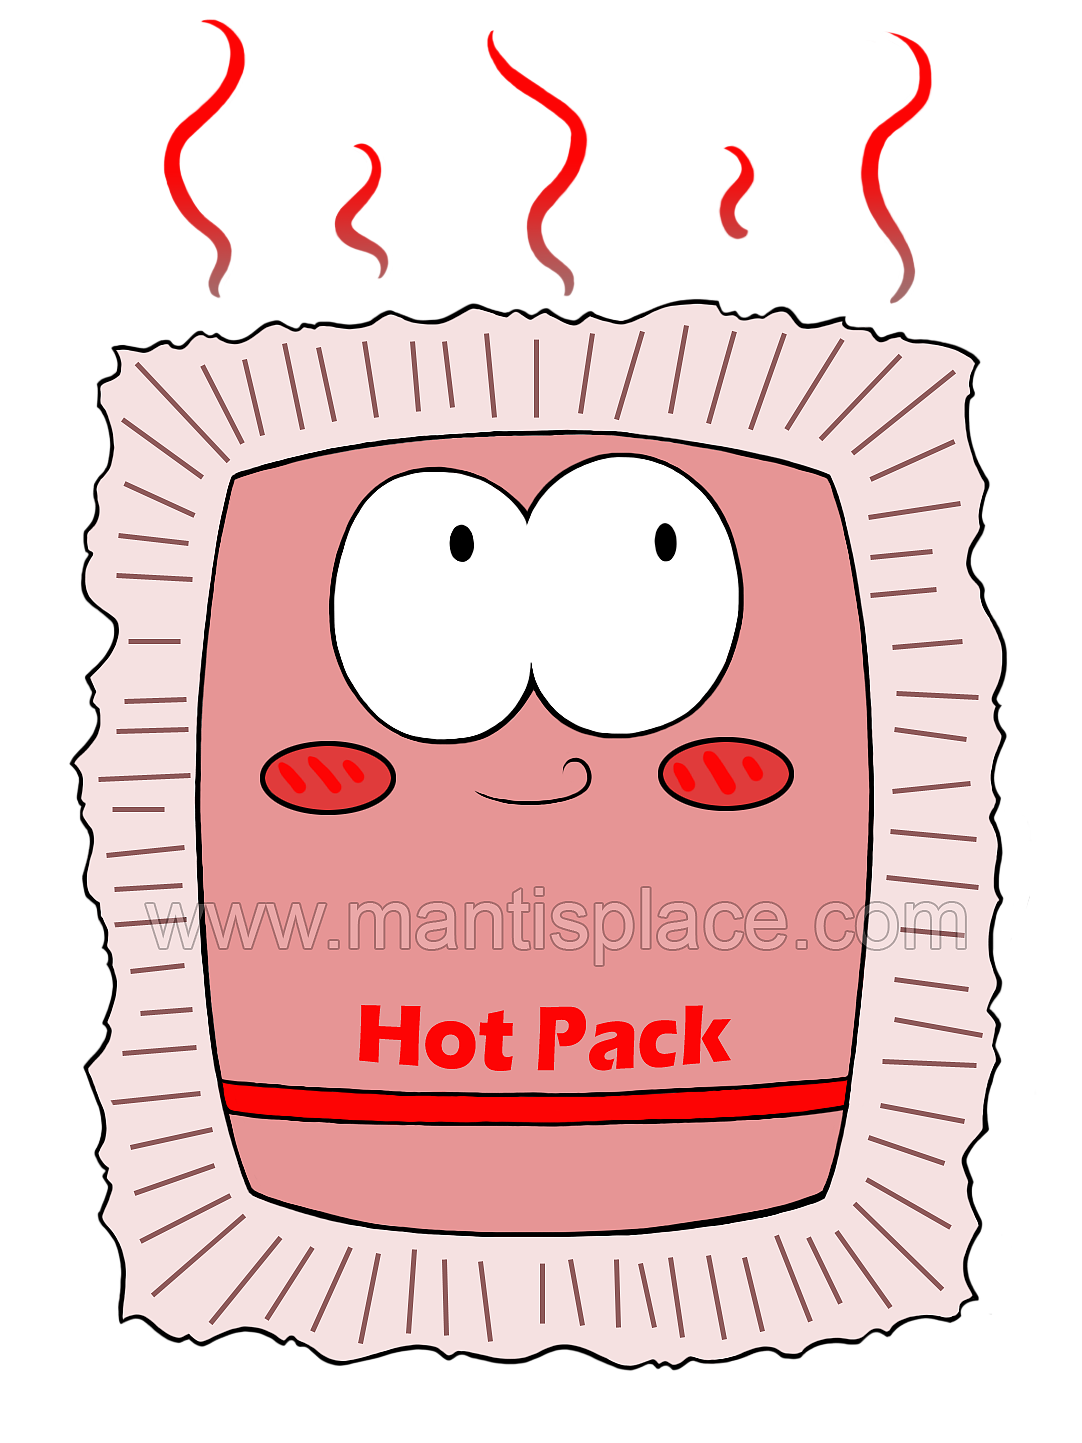 hour heat pack. Clipart mouth hand over